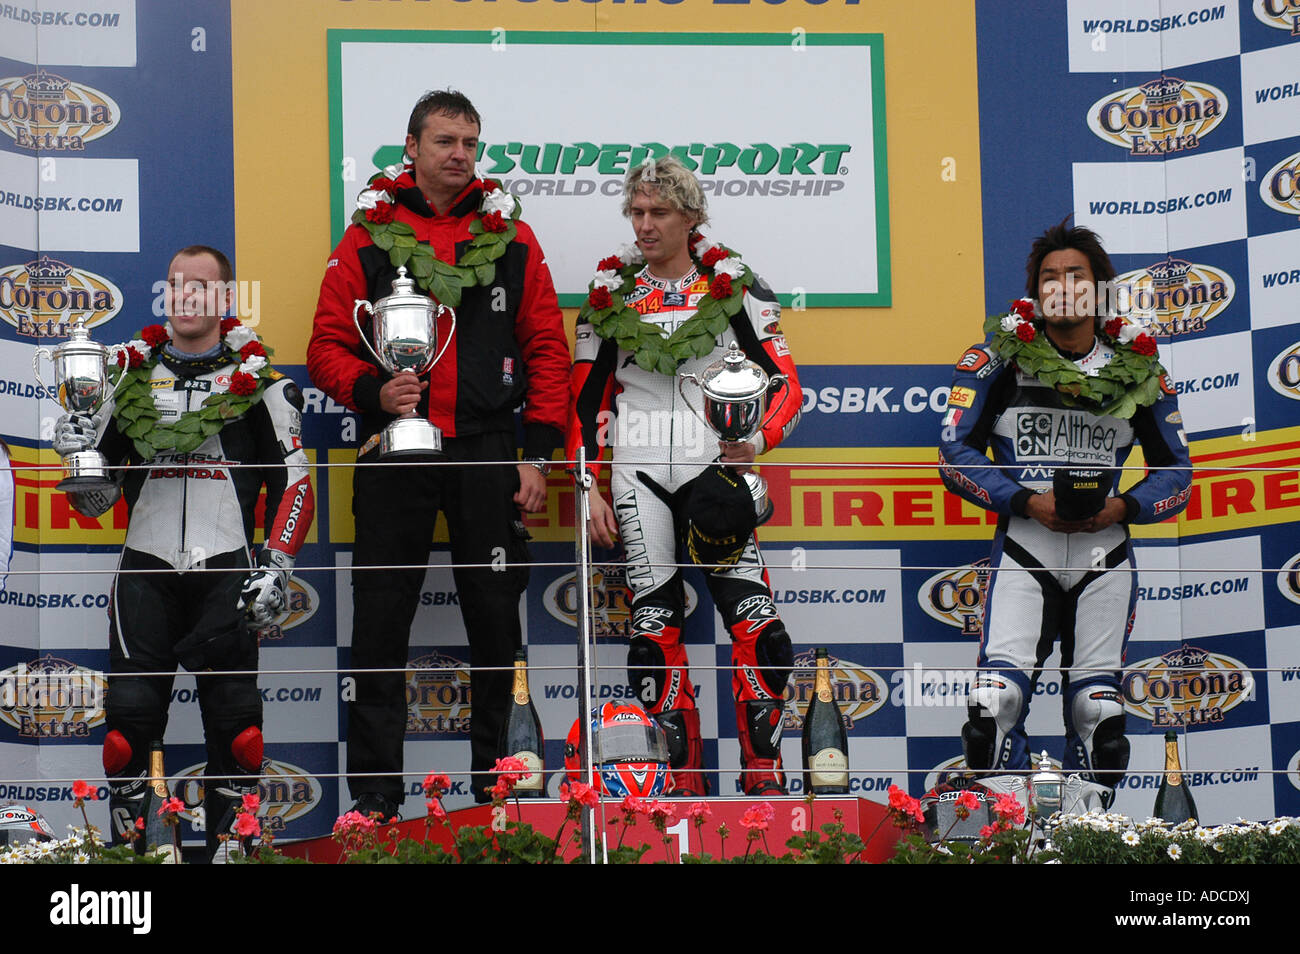 Round 7 World Supersport Podium at Silverstone, Northamptonshire, England - Stock Image